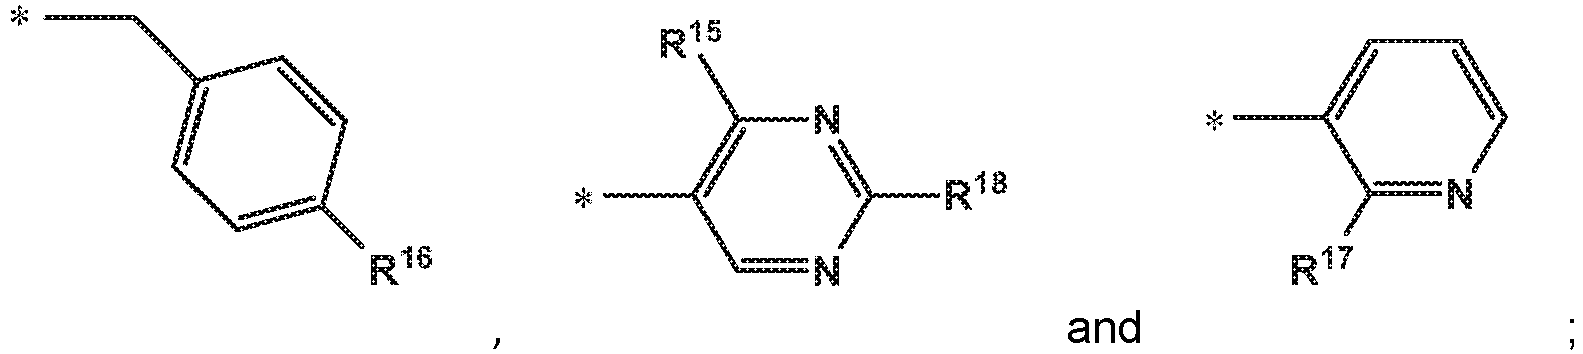 Ep3004110b1 Pyrazolopyrrolidine Derivatives And Their Use In The